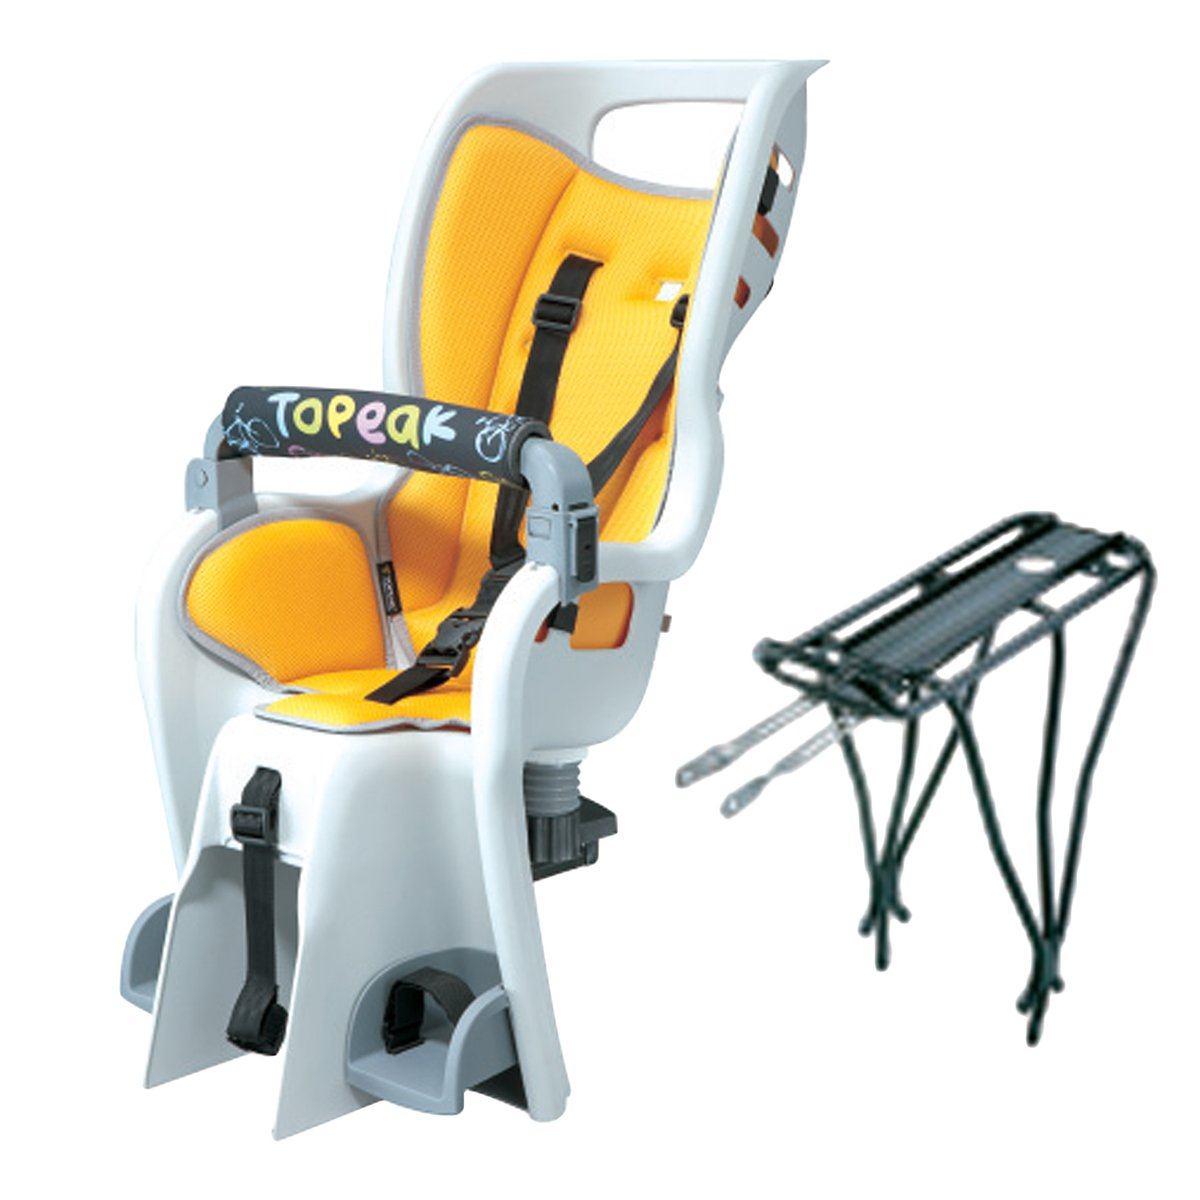 Baby chair on bike - Topeak Baby Seat Ii 26in Non Disc Rack Bicycle Baby Seat